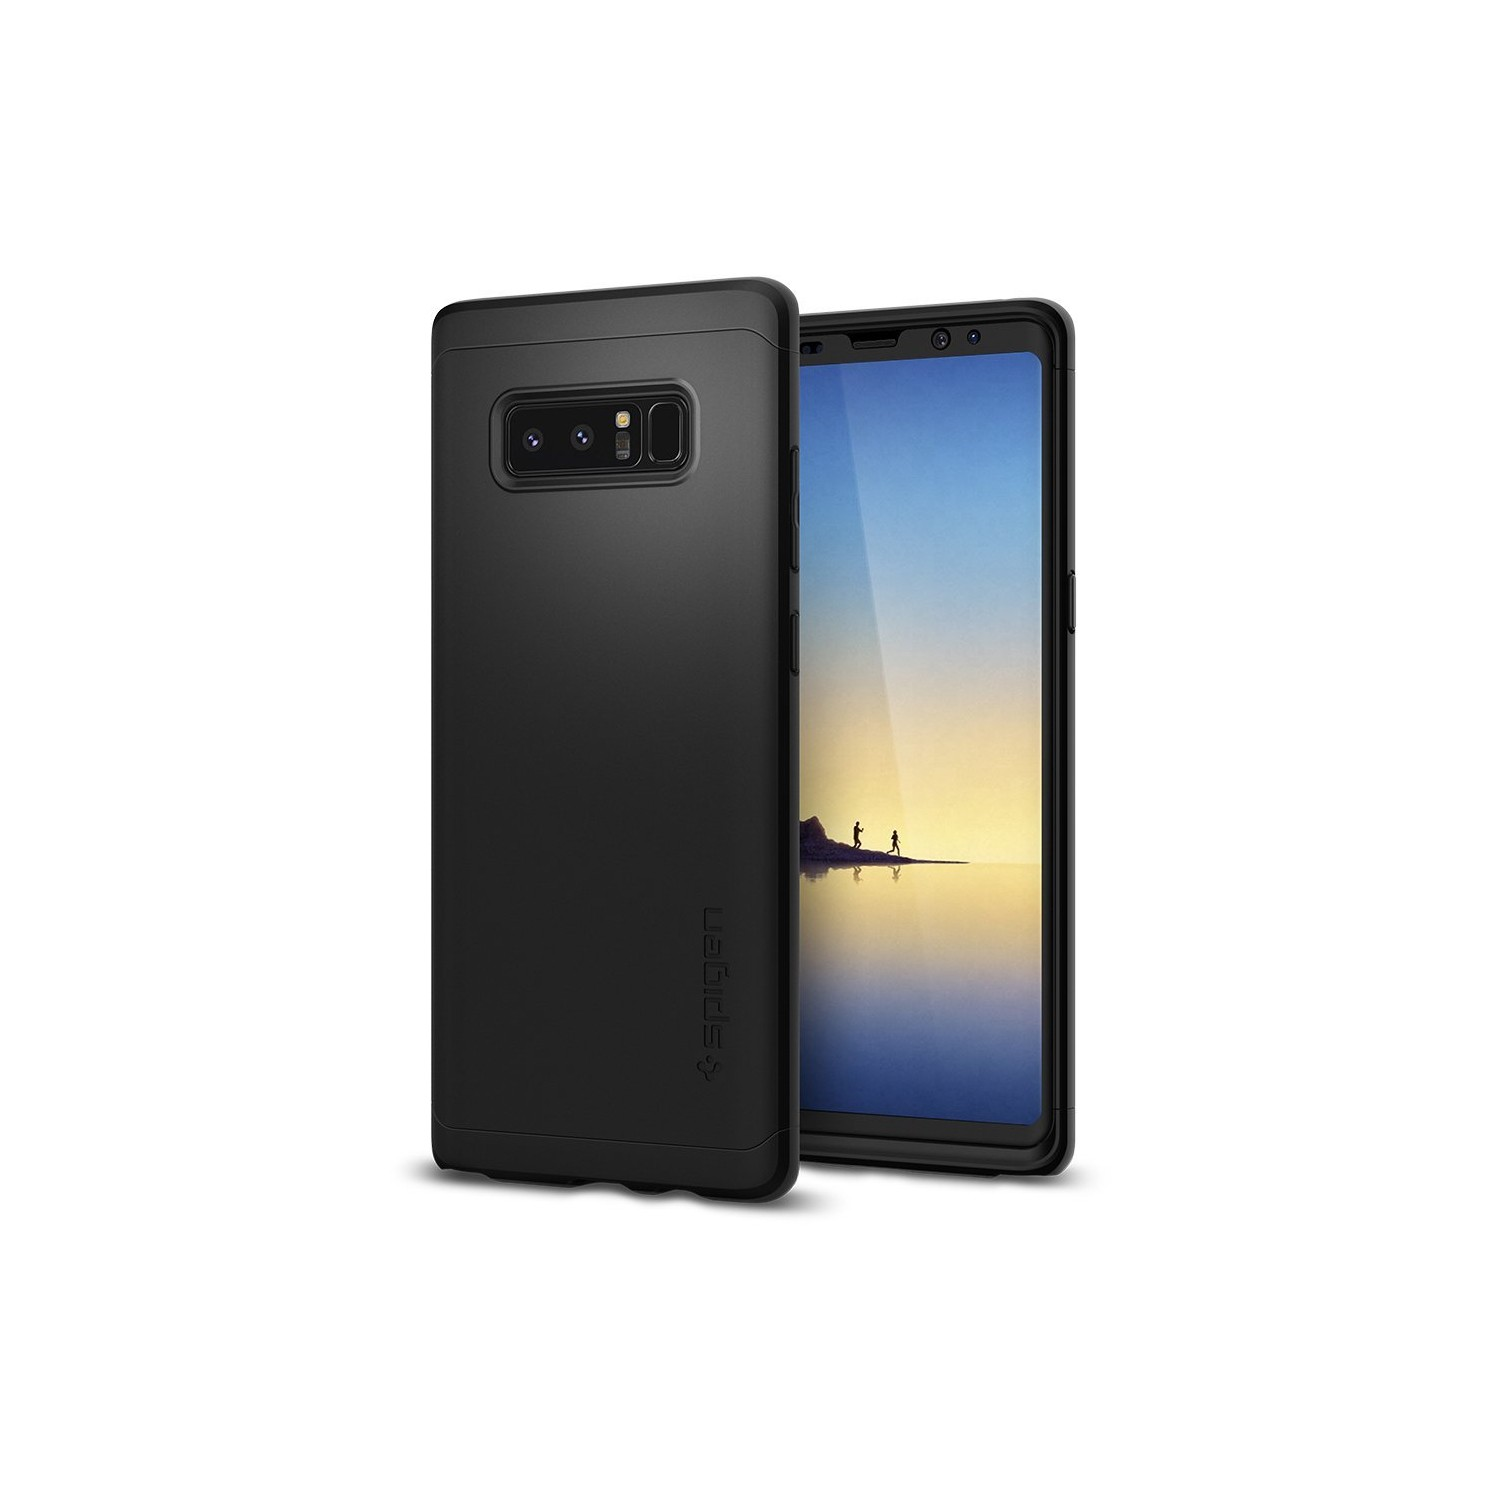 Galaxy Note 8 Case, Galaxy Note8 Case, Spigen Thin Fit 360 - Exact Slim  Full Cover Protection Case with Tempered Glass Screen - Online Only 4070bcb0083e